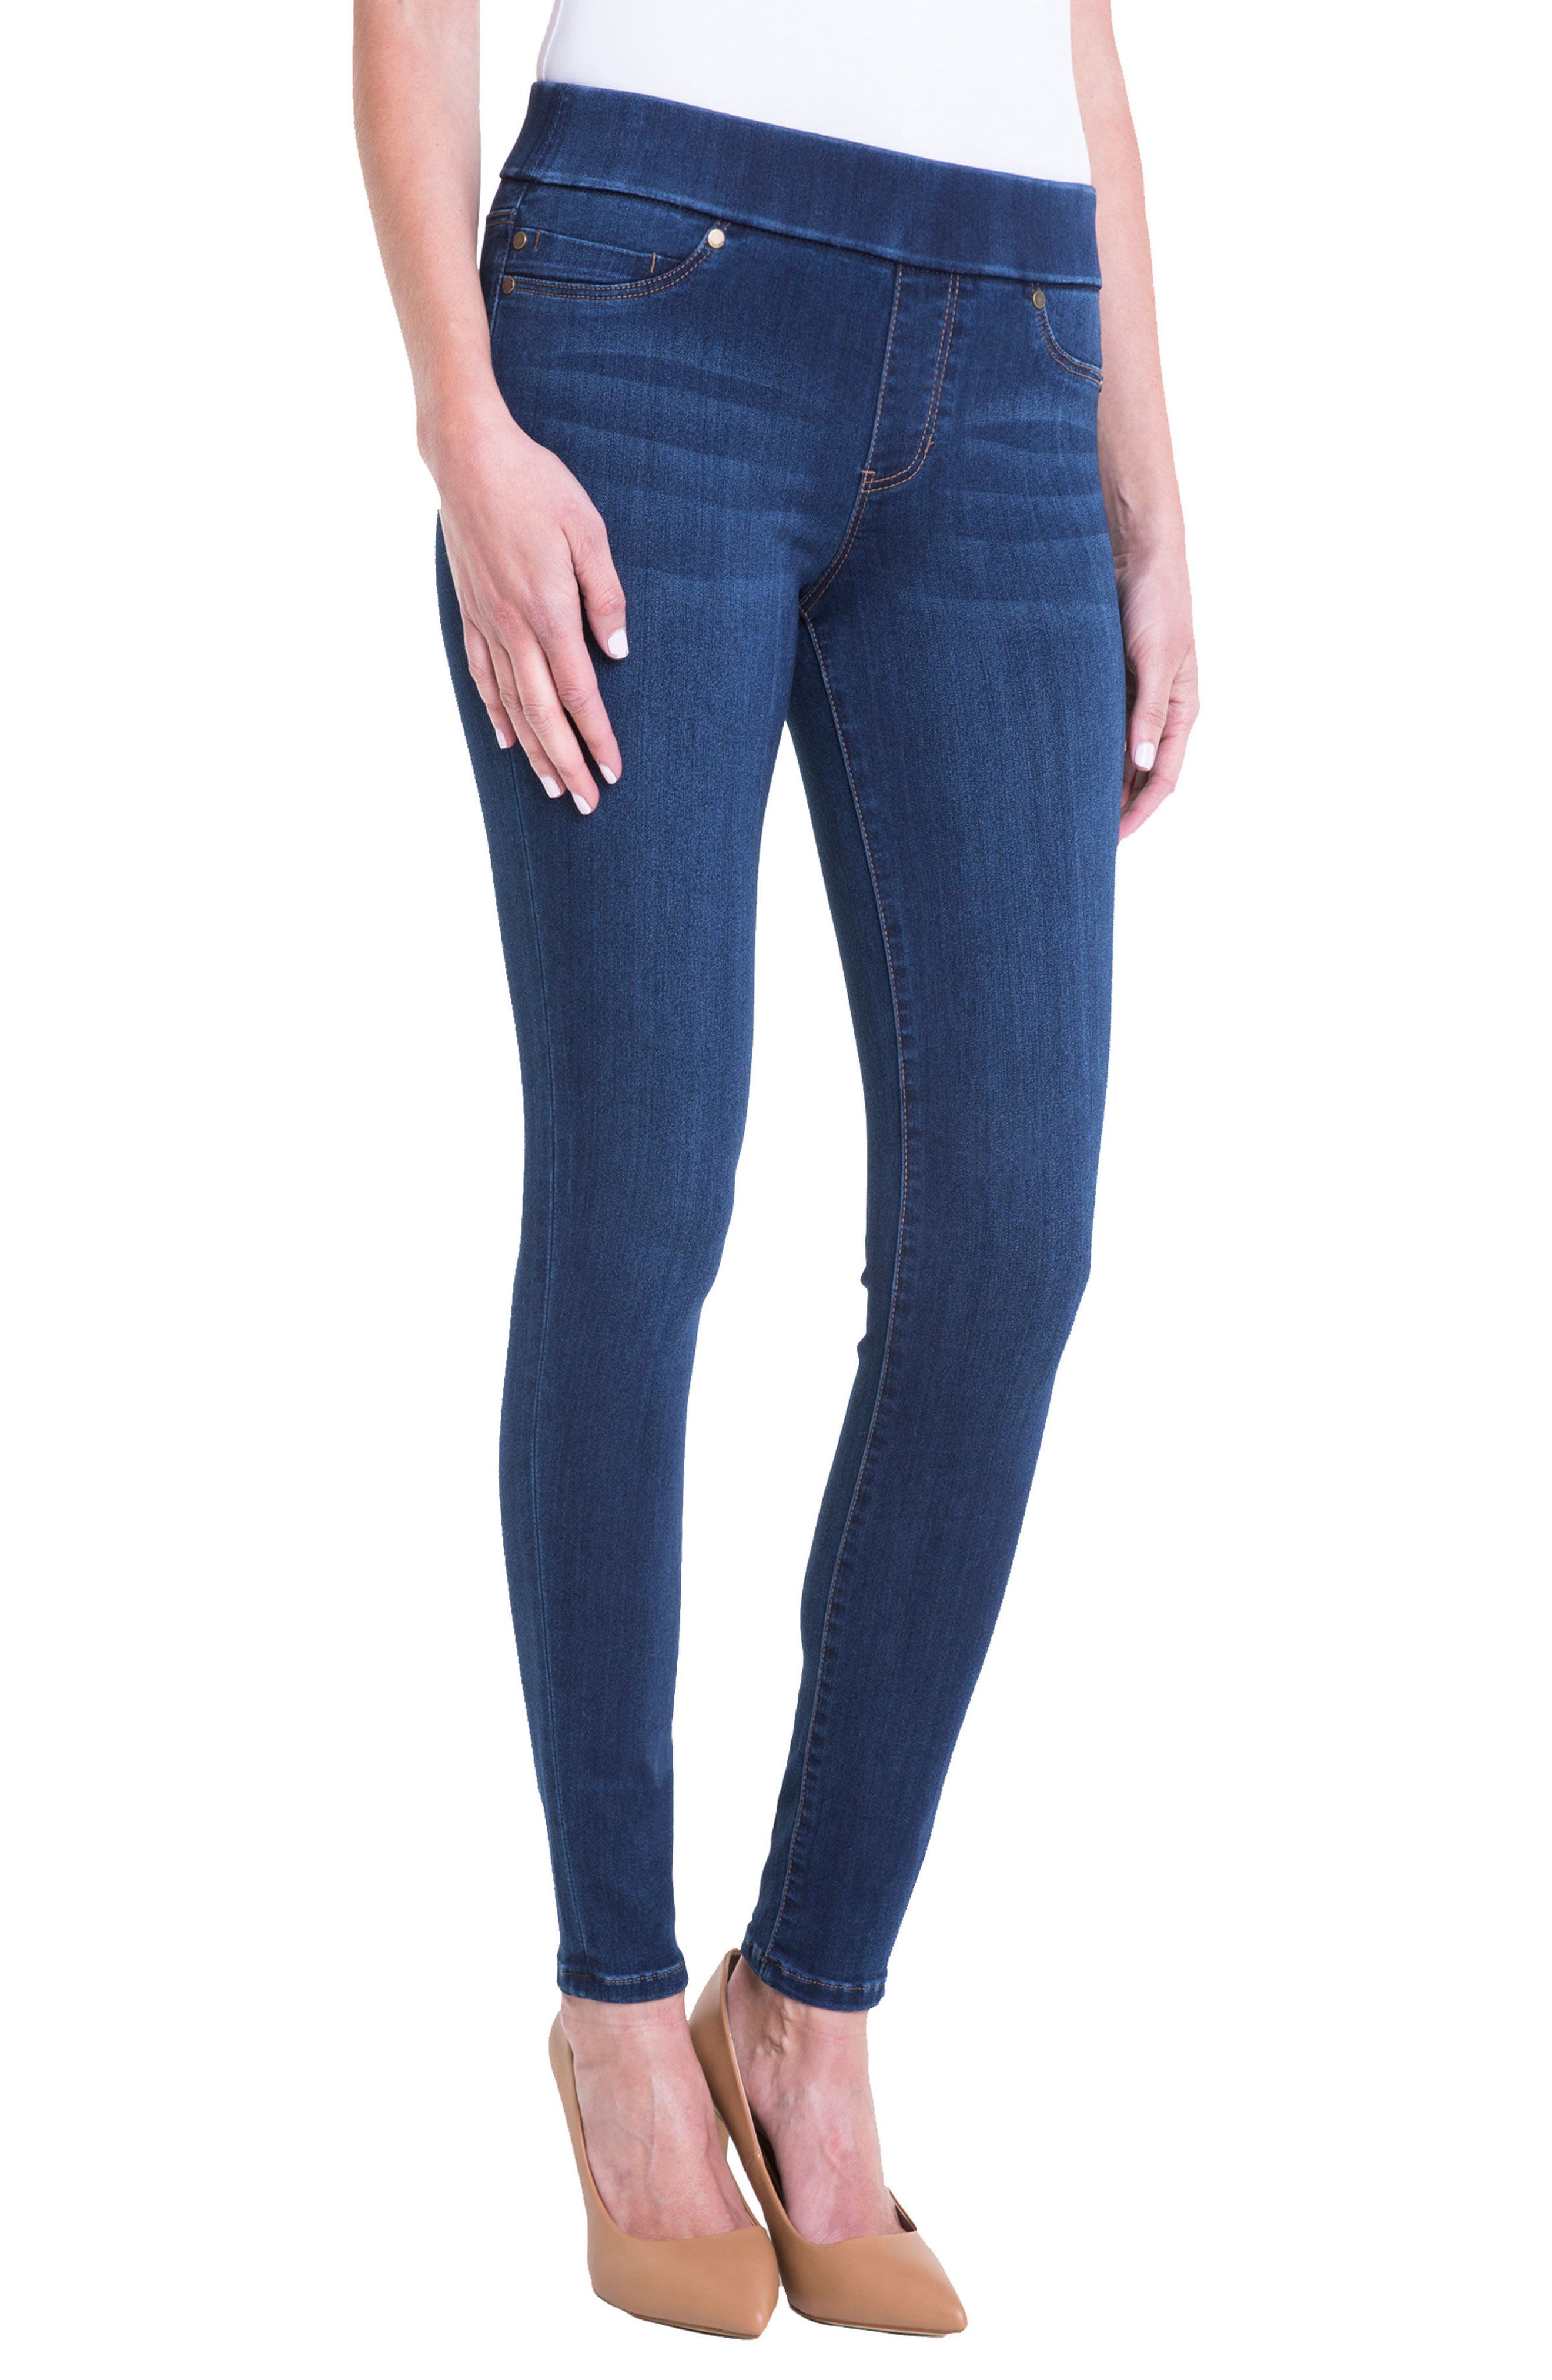 Liverpool Jeans Company Sienna Pull-On Jeans (San Andreas Dark)